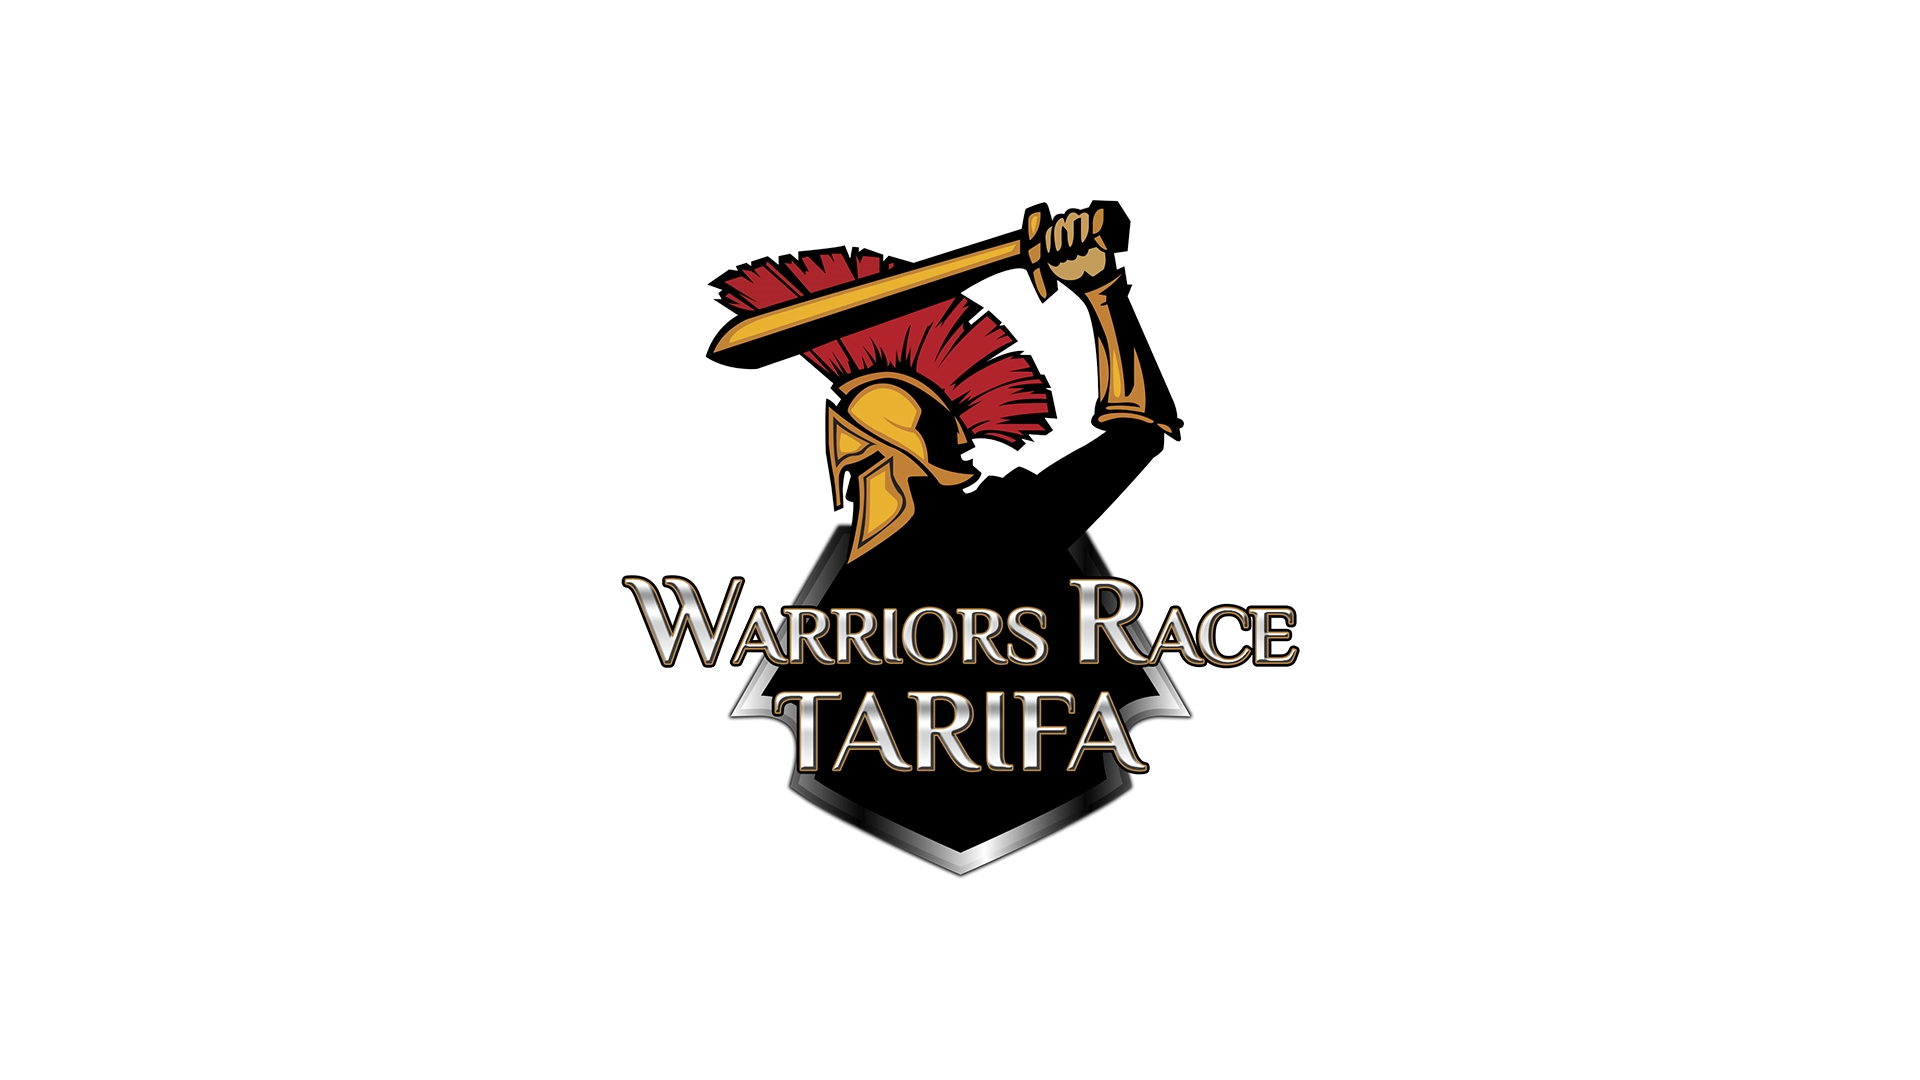 WARRIORS RACE 2018